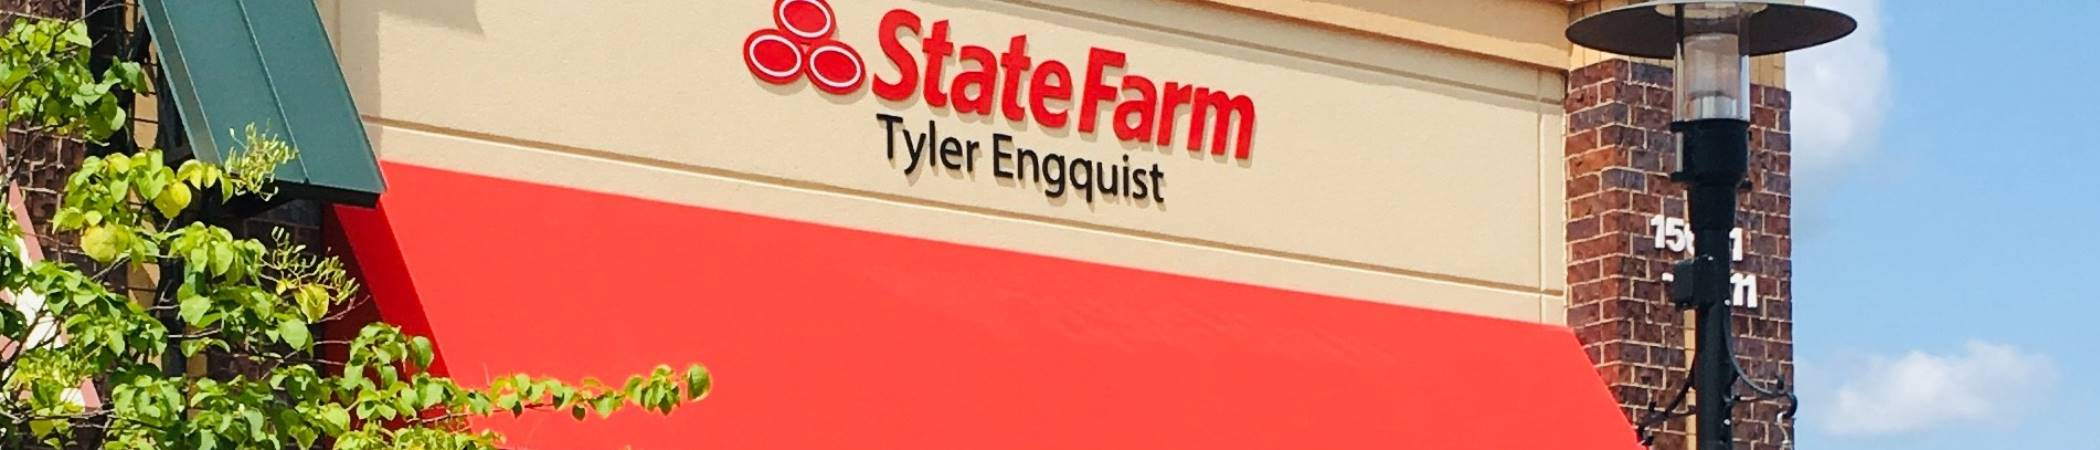 Tyler Engquist State Farm Insurance in Maple Grove, MN | Home, Auto Insurance & more